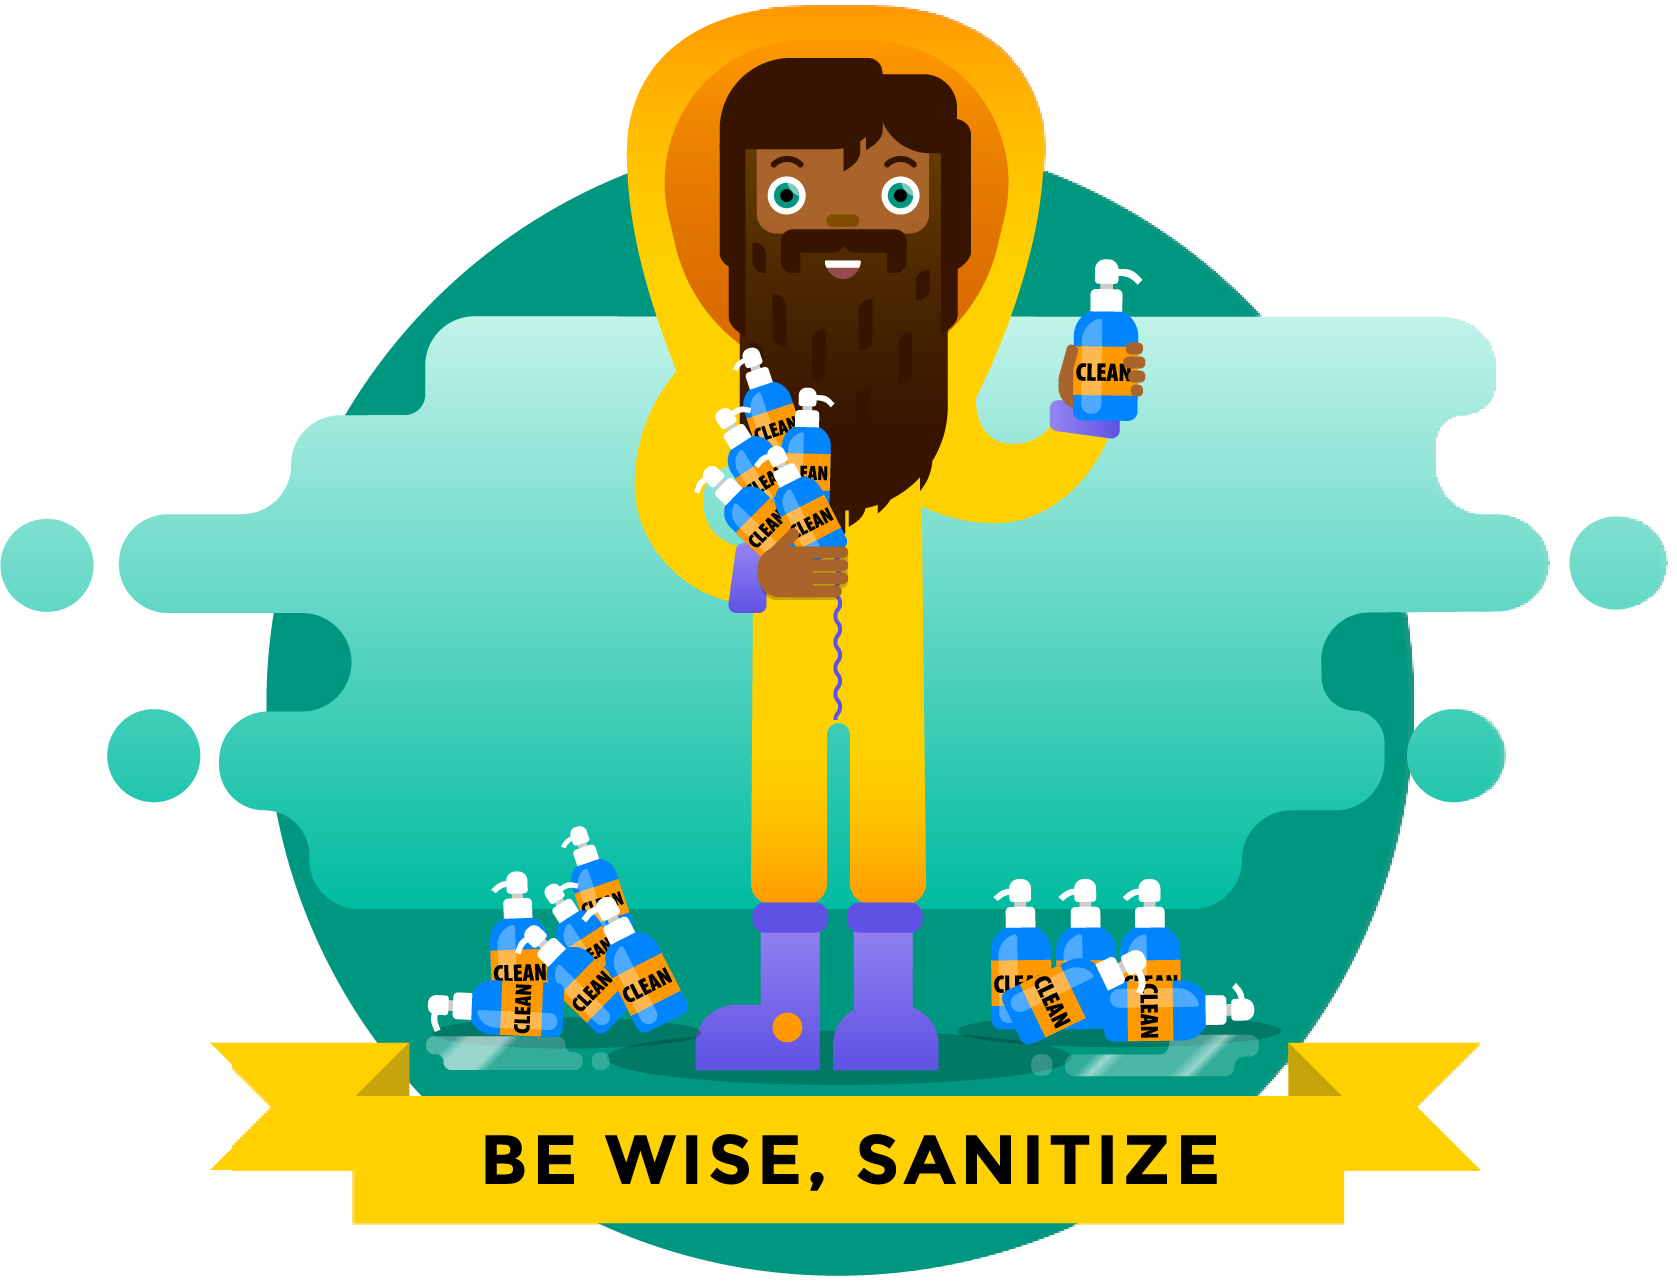 Be Wise, Sanitize